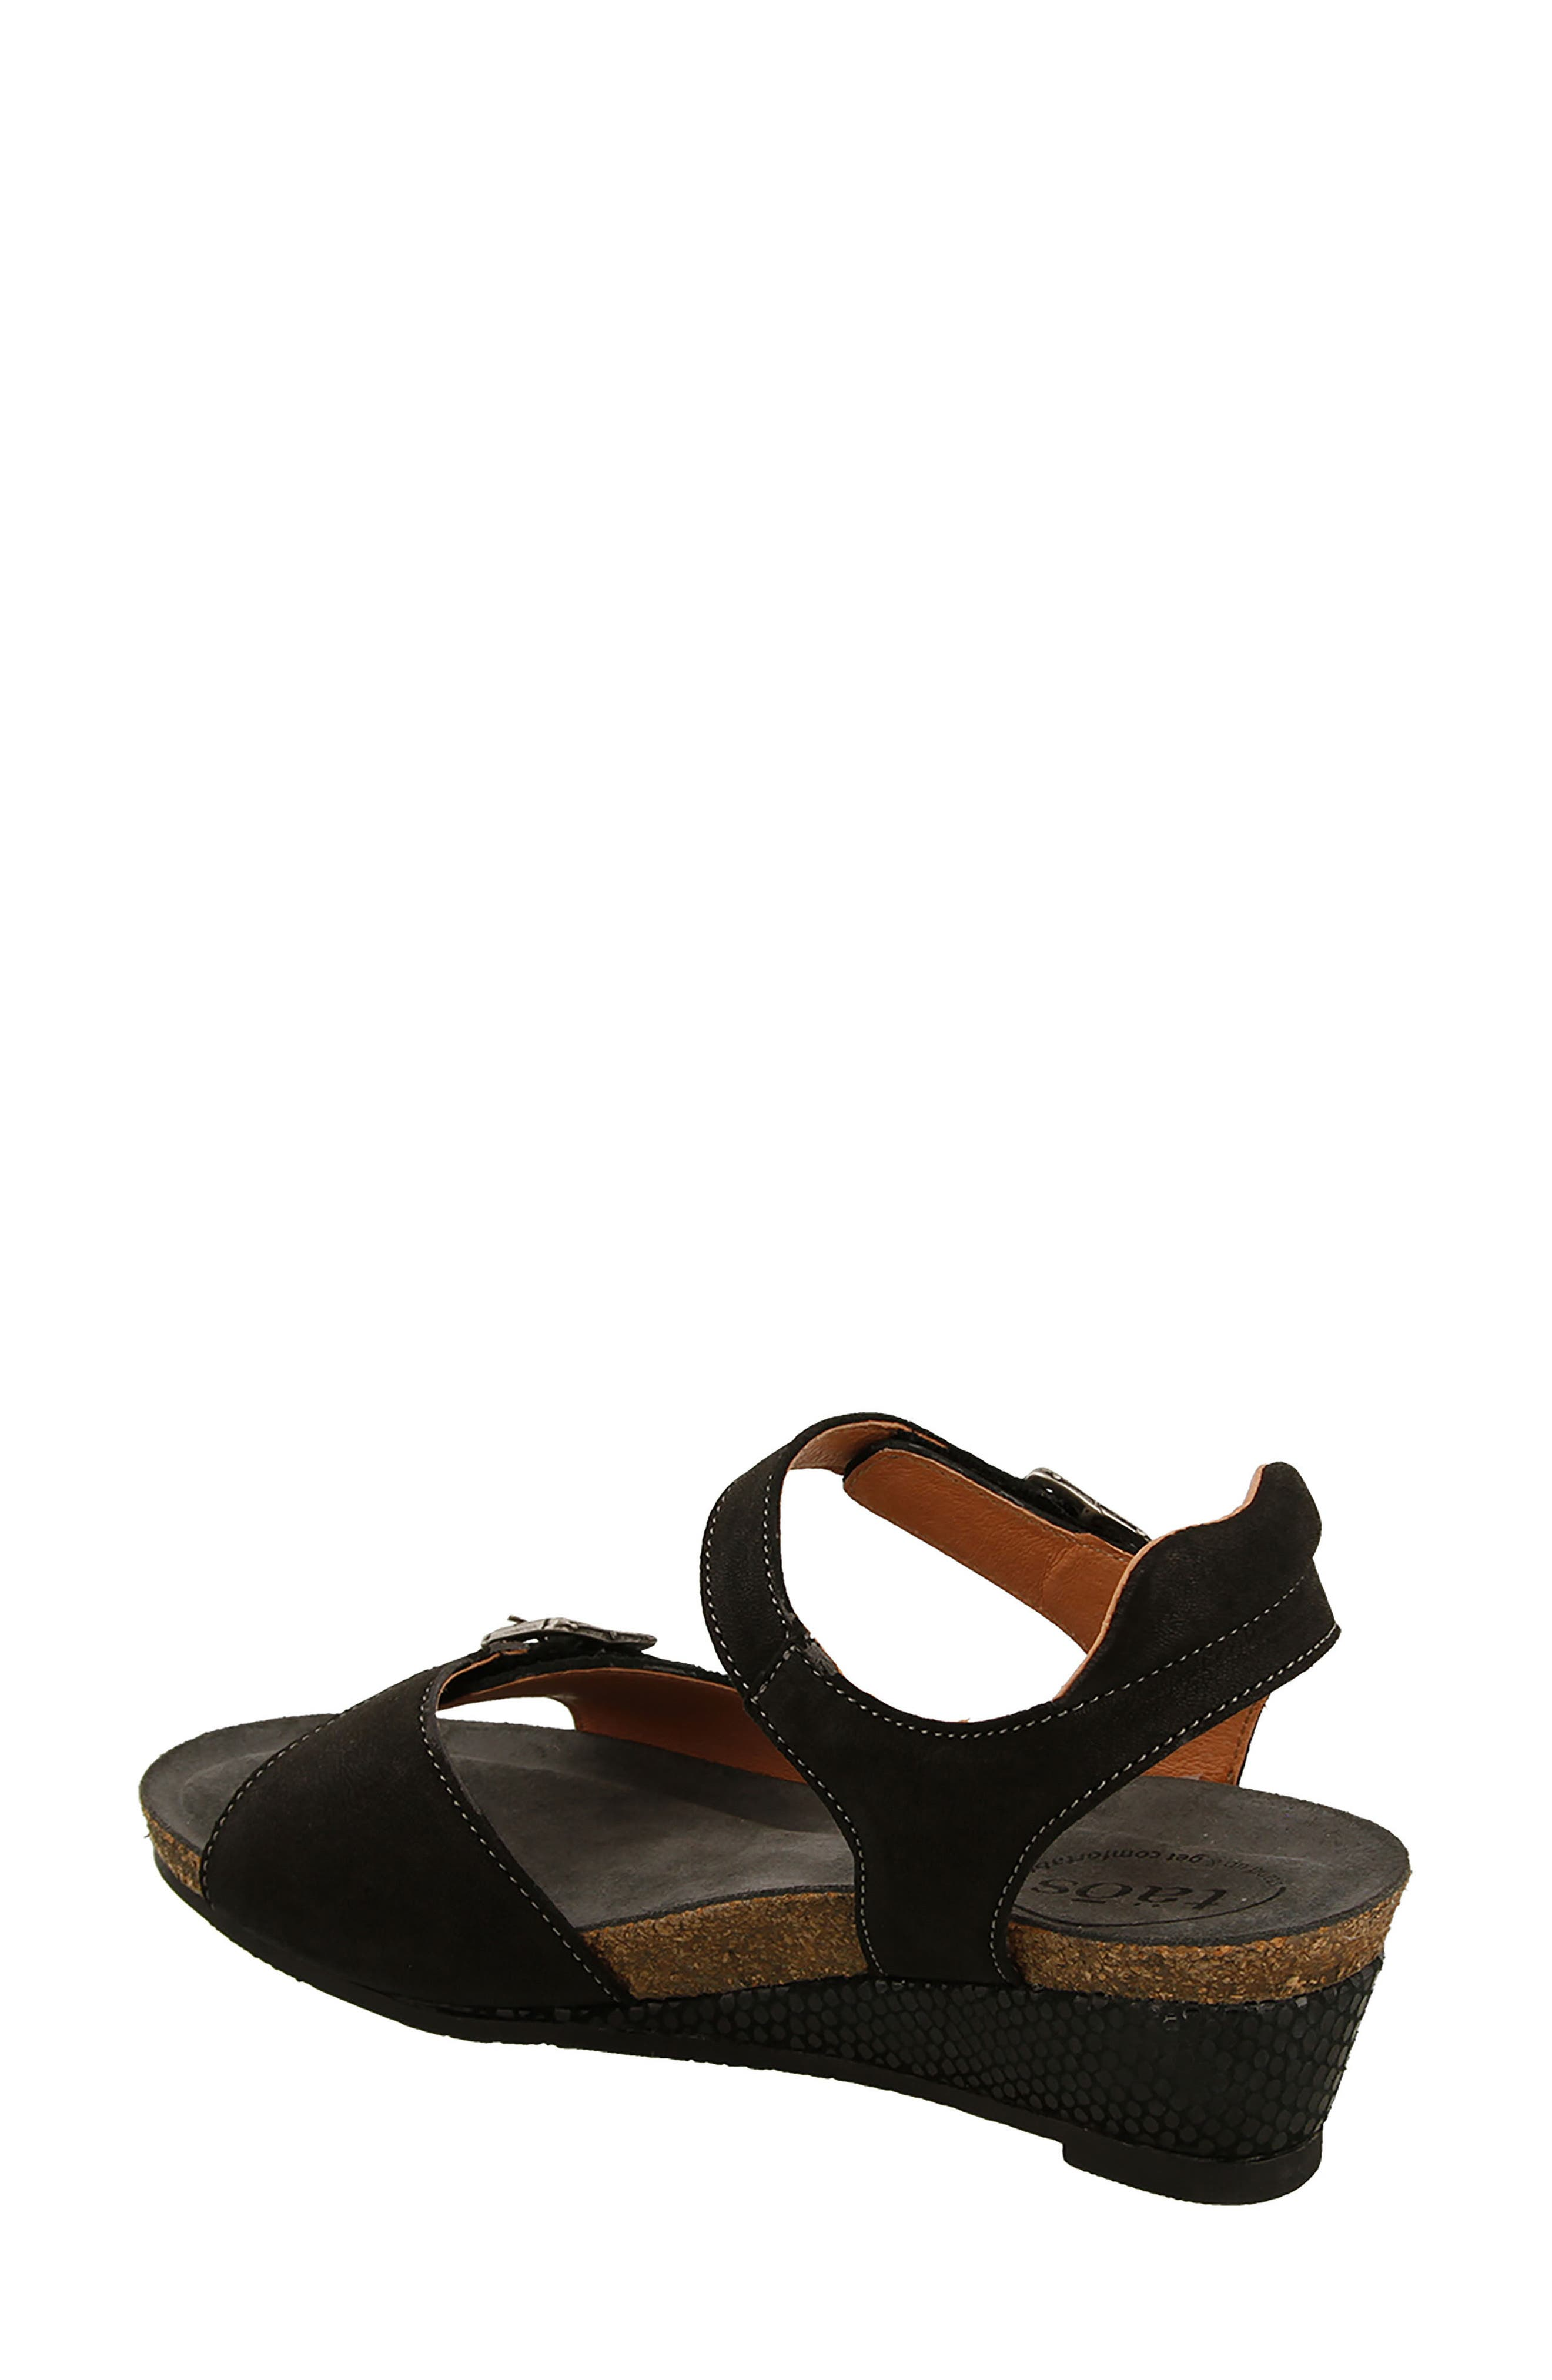 Traveler Wedge Sandal,                             Alternate thumbnail 2, color,                             002